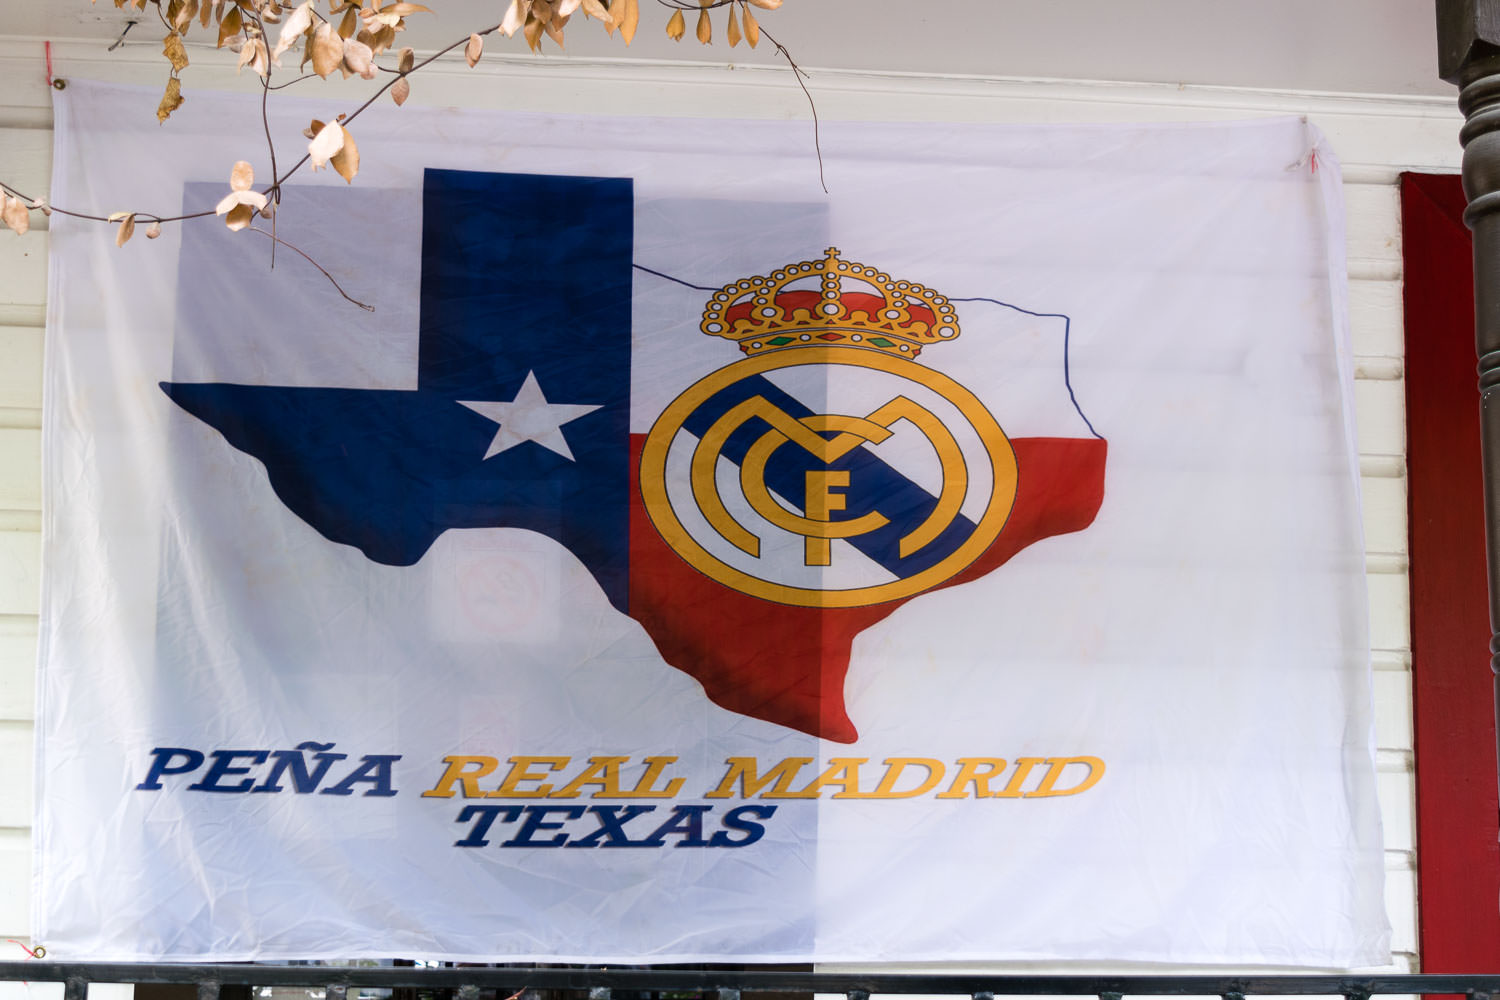 ¿Fan del Real Madrid? - ¡Somos la primera peña oficial del Real Madrid en el estado de Tejas!